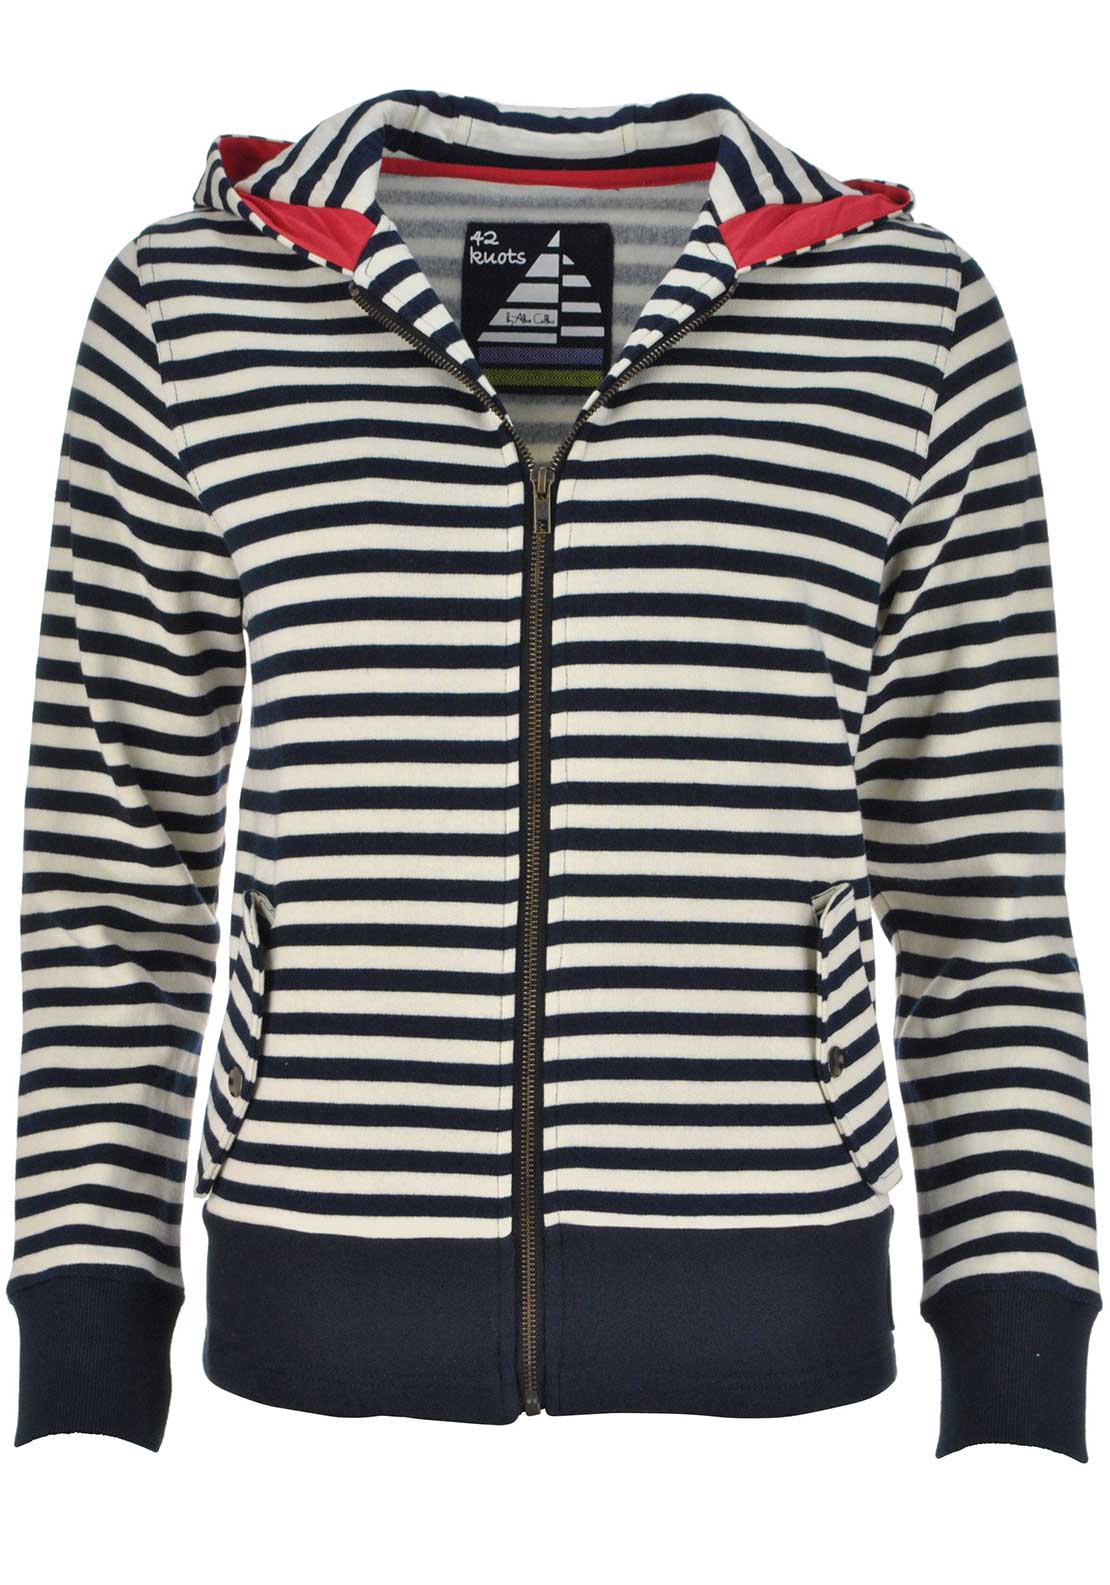 42 Knots by Alice Collins Striped Zip Up Hoody Jumper, Cream and Navy